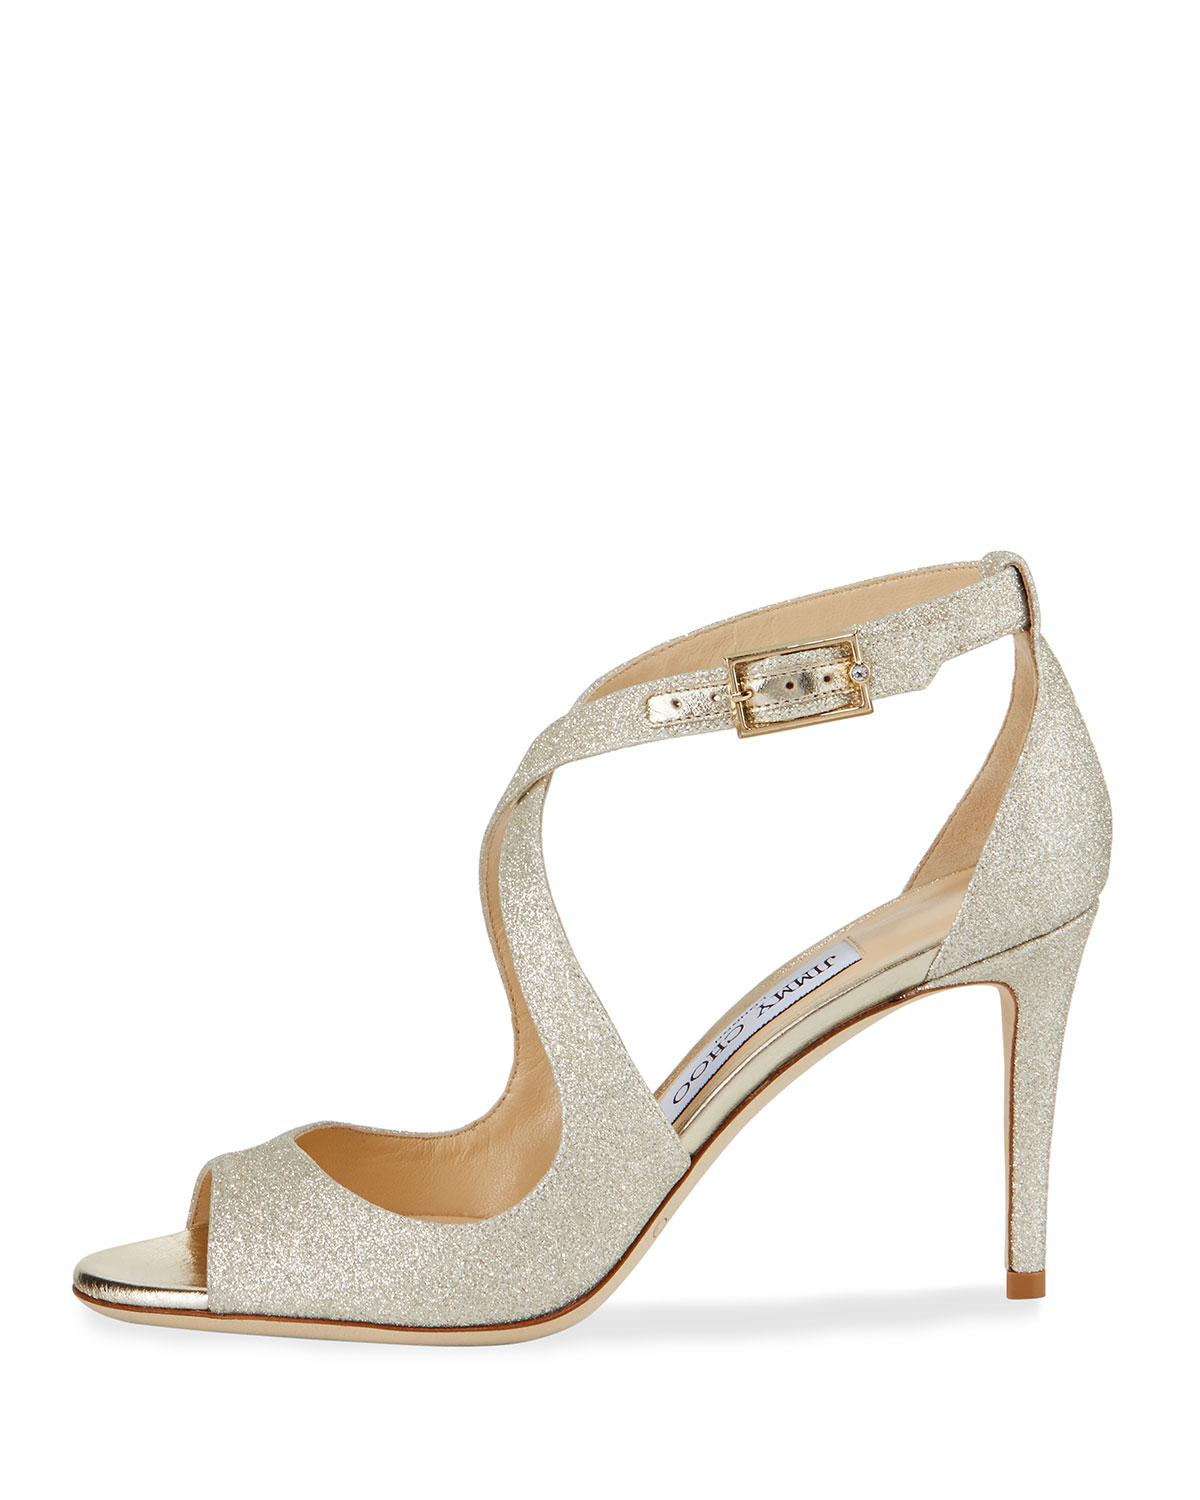 6a1f986512ec Jimmy Choo Emily Glitter Crisscross 85mm Sandals Gold in Metallic - Lyst